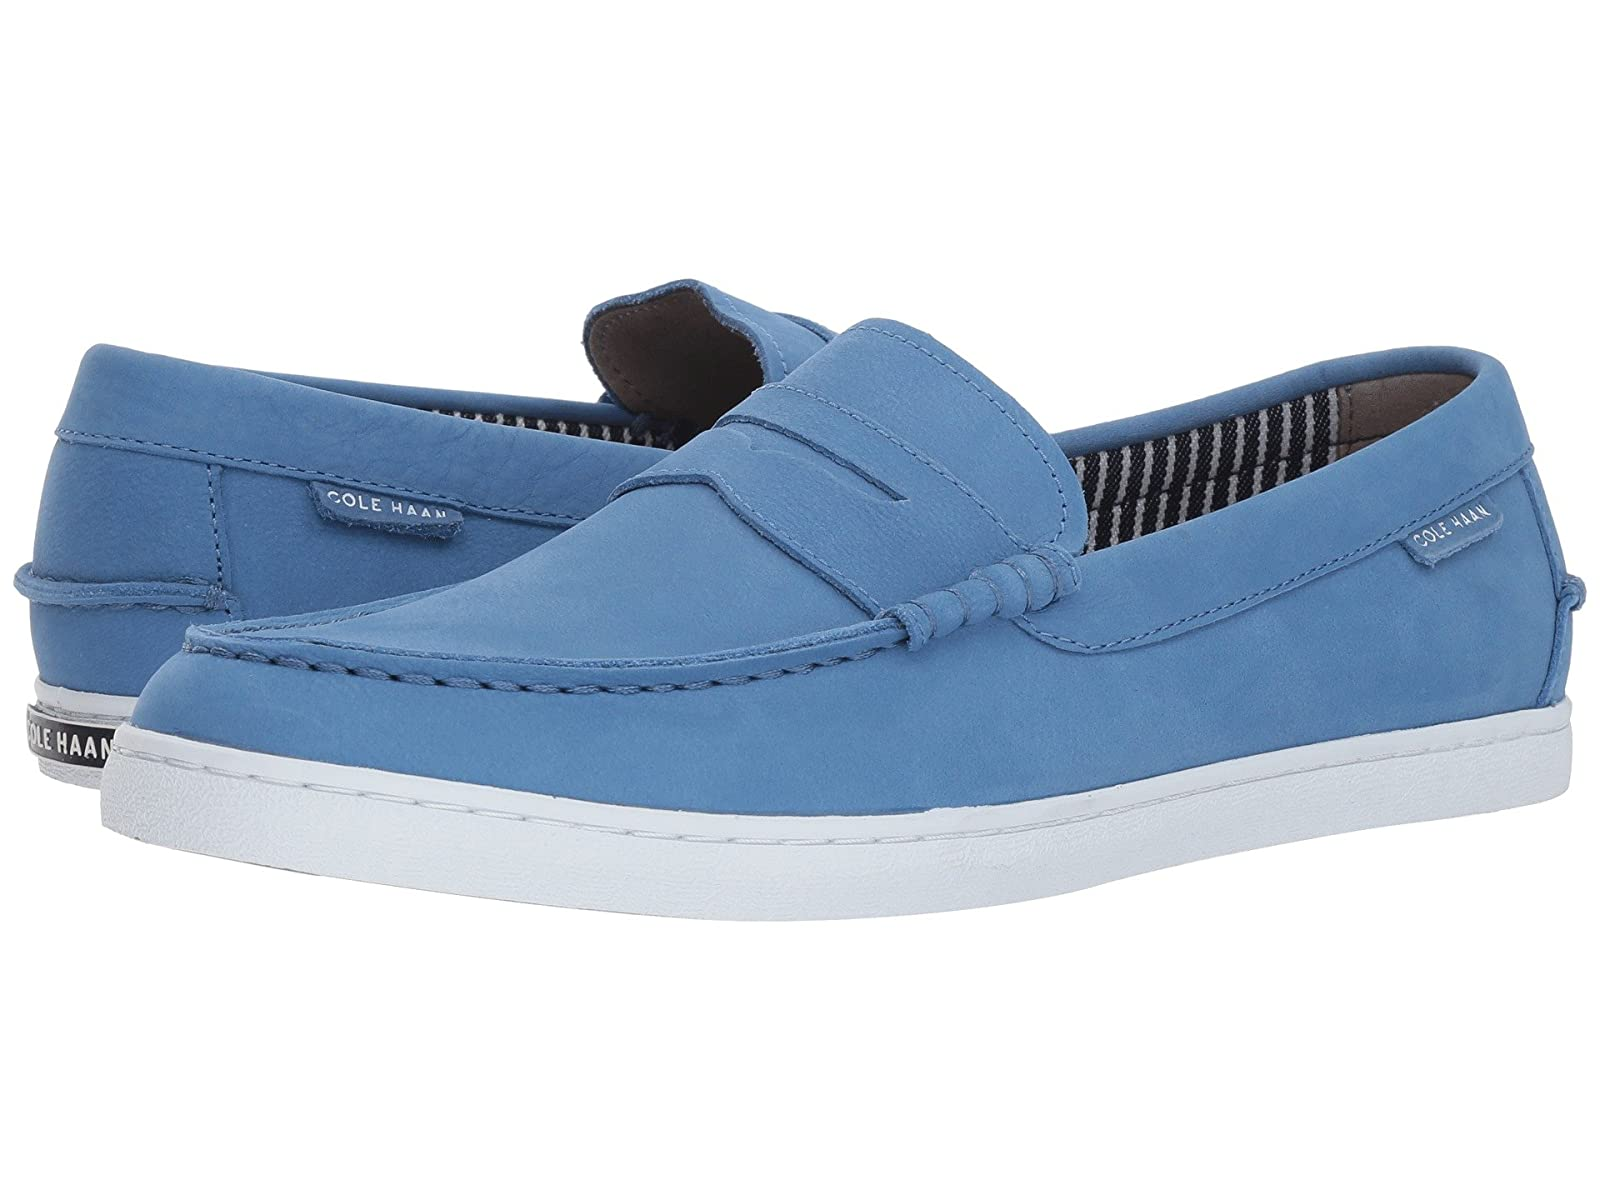 Cole Haan Nantucket LoaferCheap and distinctive eye-catching shoes